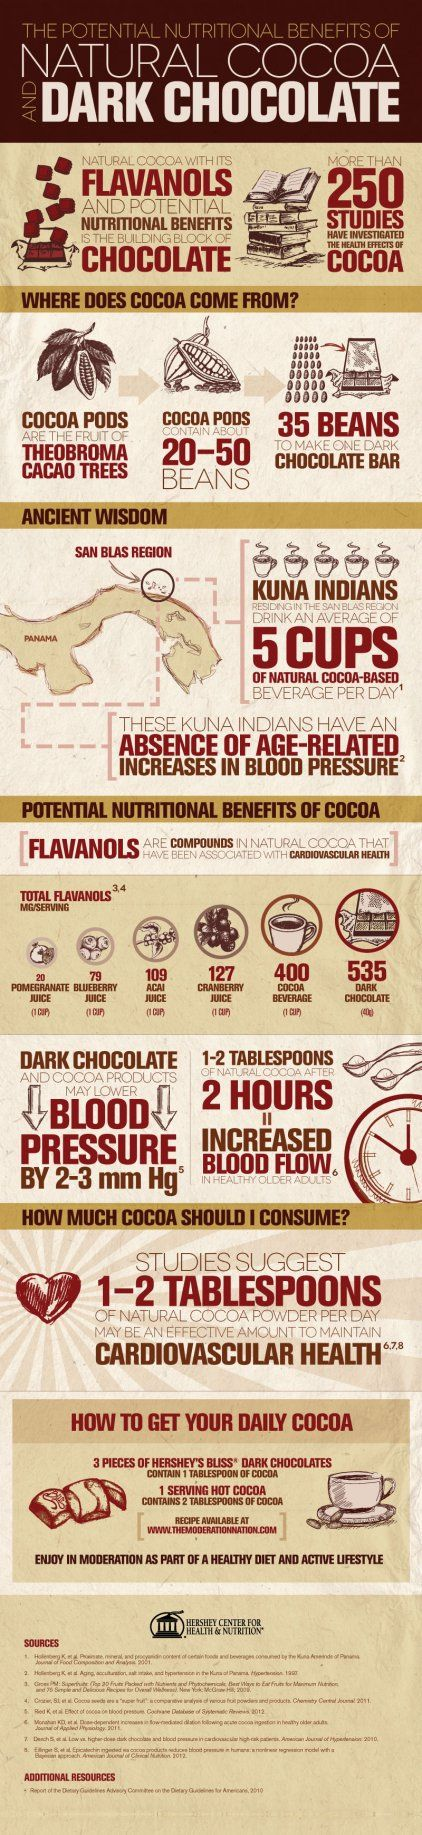 Natural Cocoa and Dark Chocolate Infographic